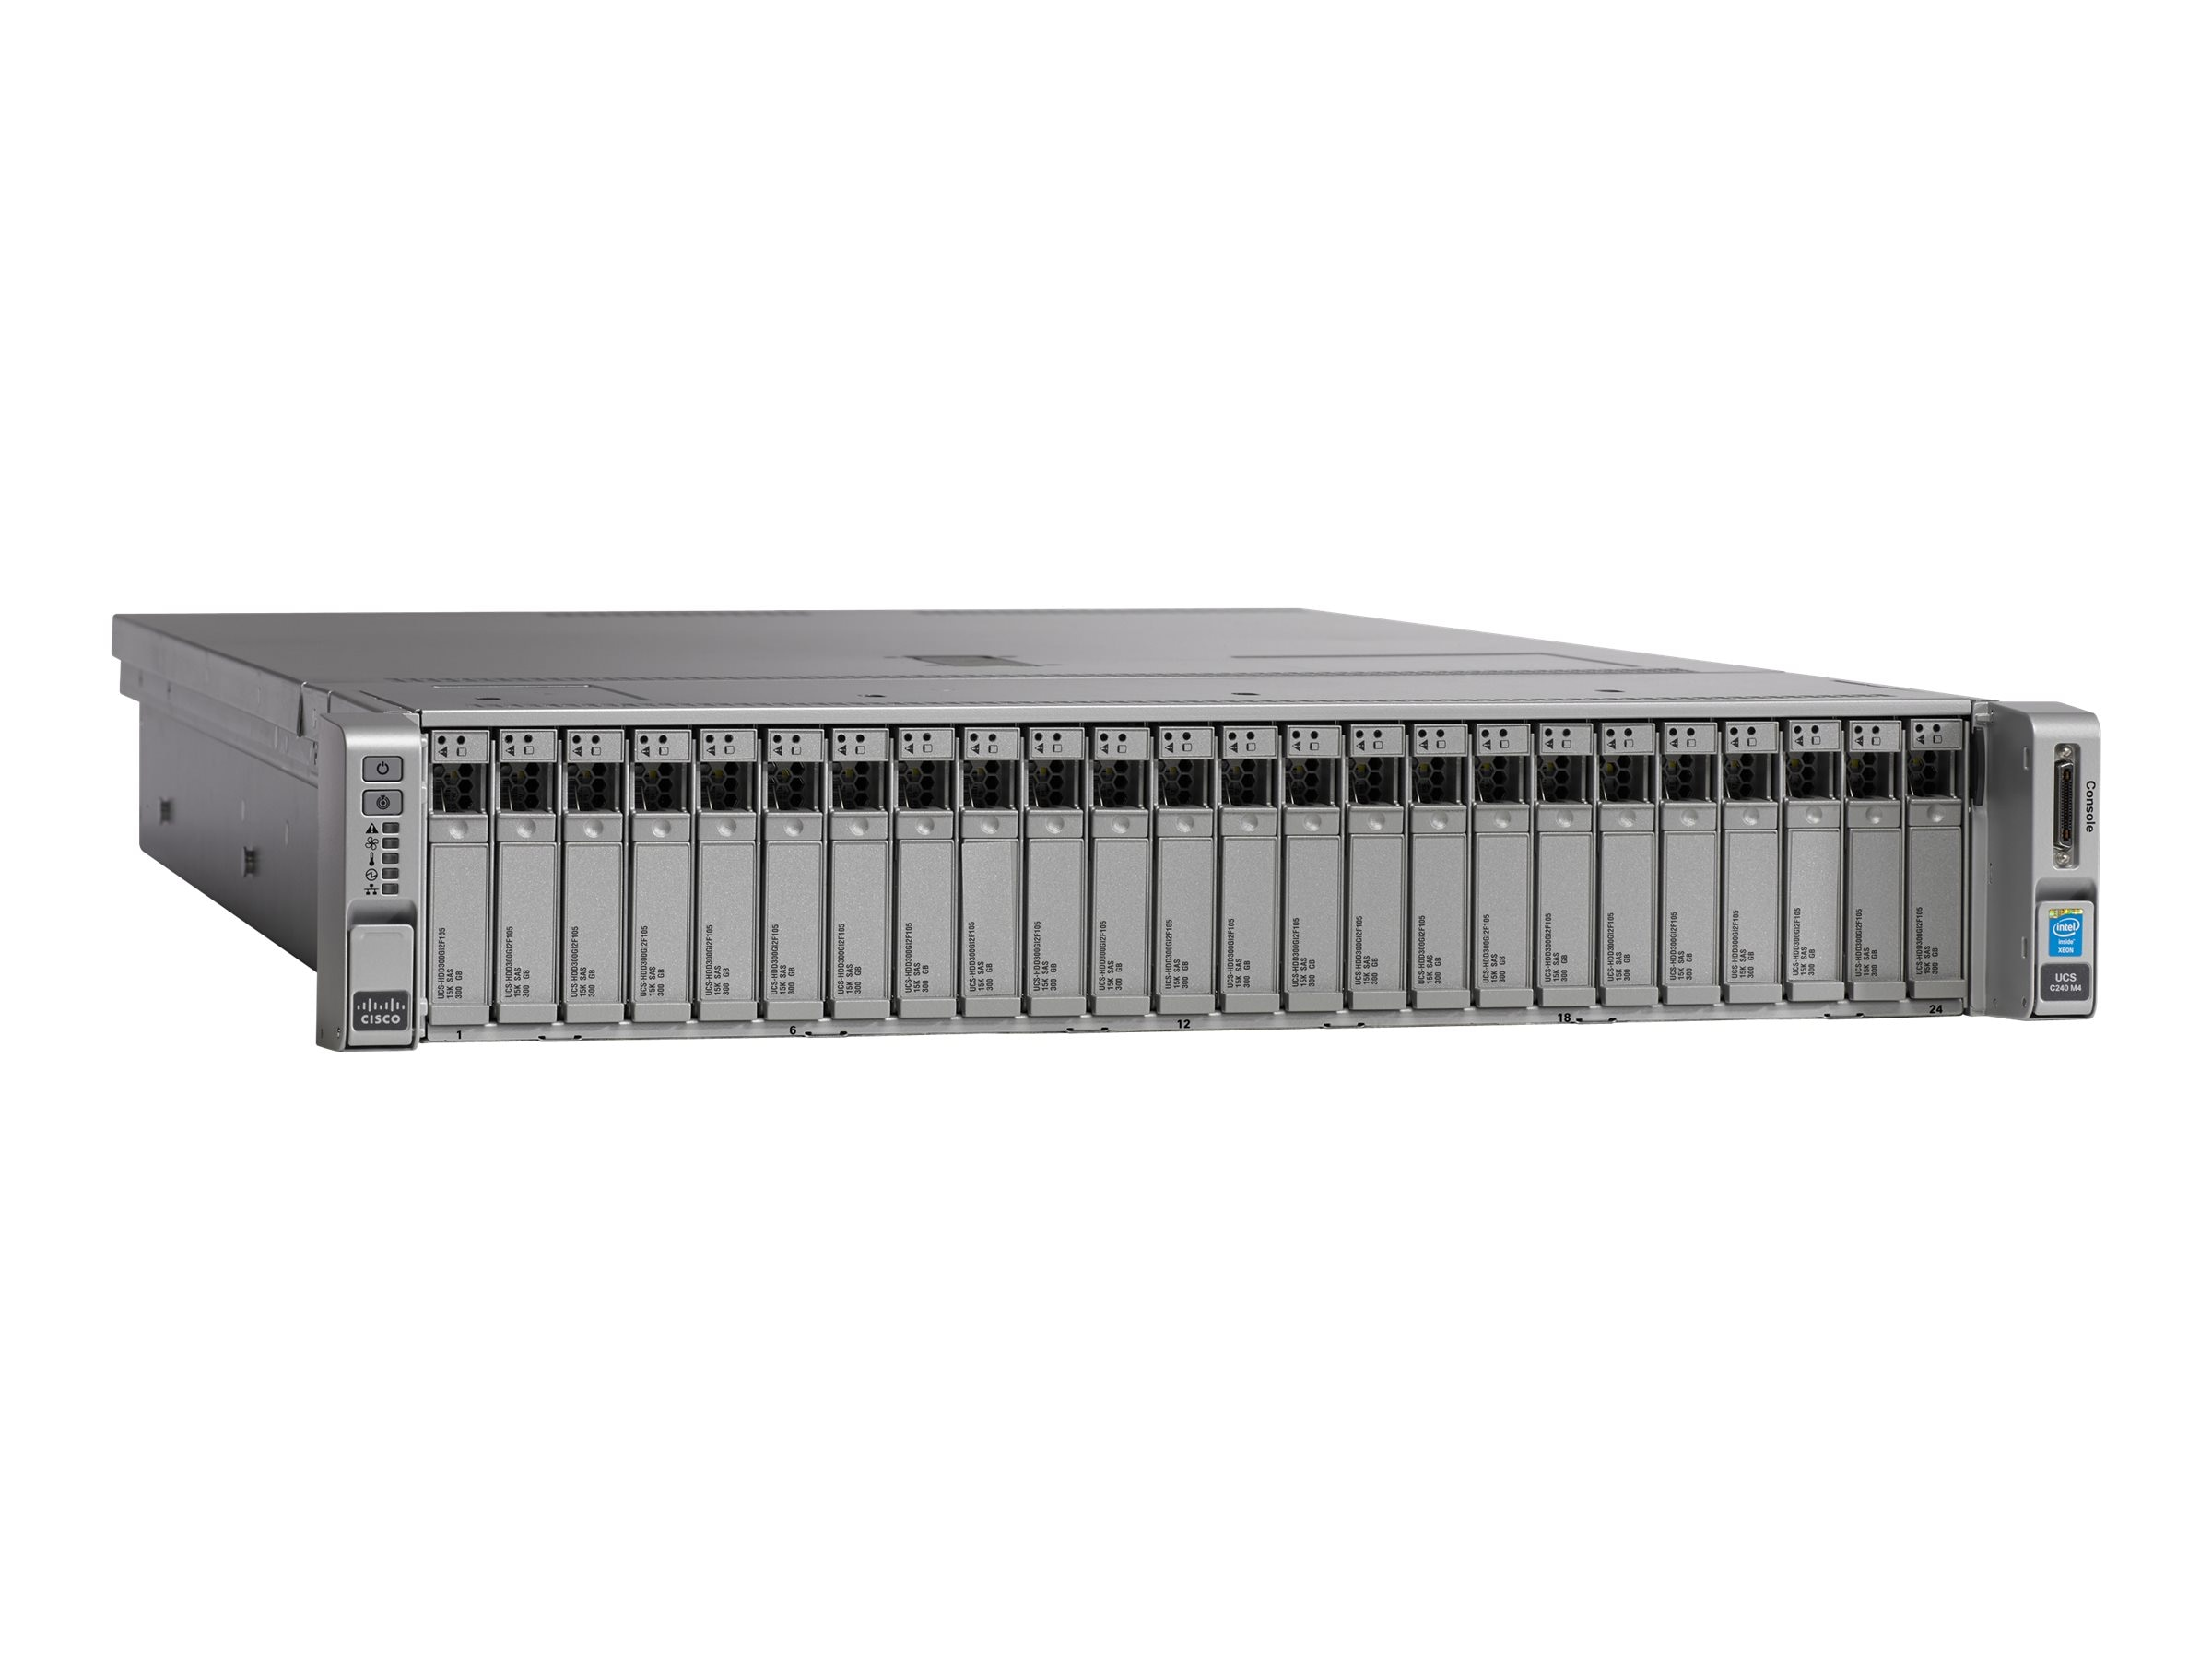 Cisco UCS-SPR-C240M4-BS1 Image 2